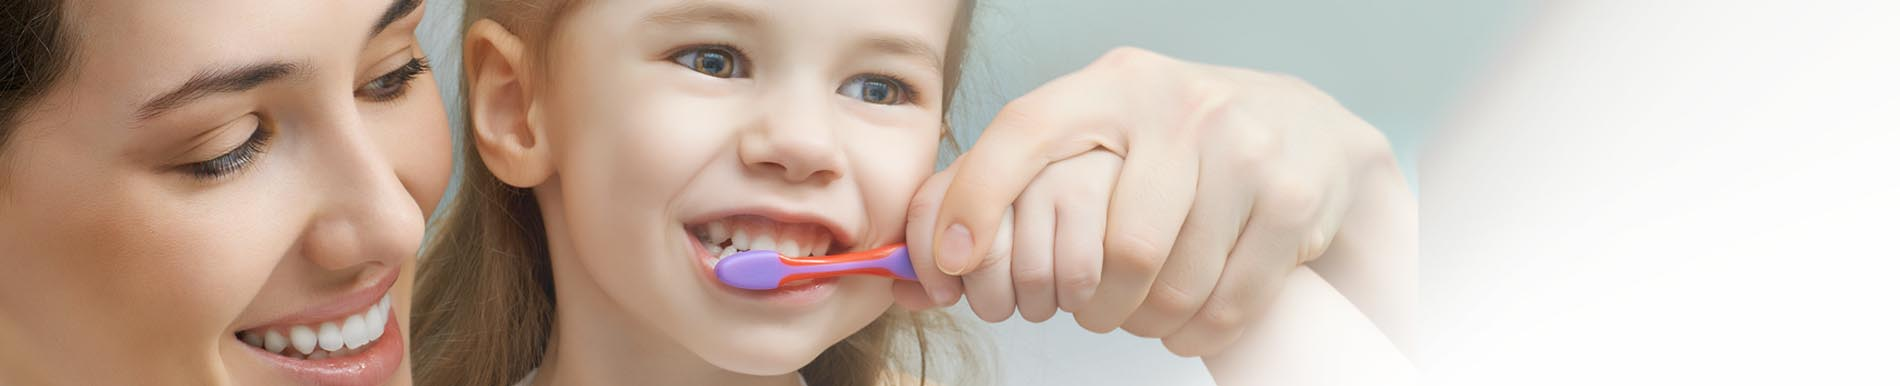 https://www.healthychildren.org/SiteCollectionImage-Homepage-Banners/brushing_childs_teeth_banner.jpg